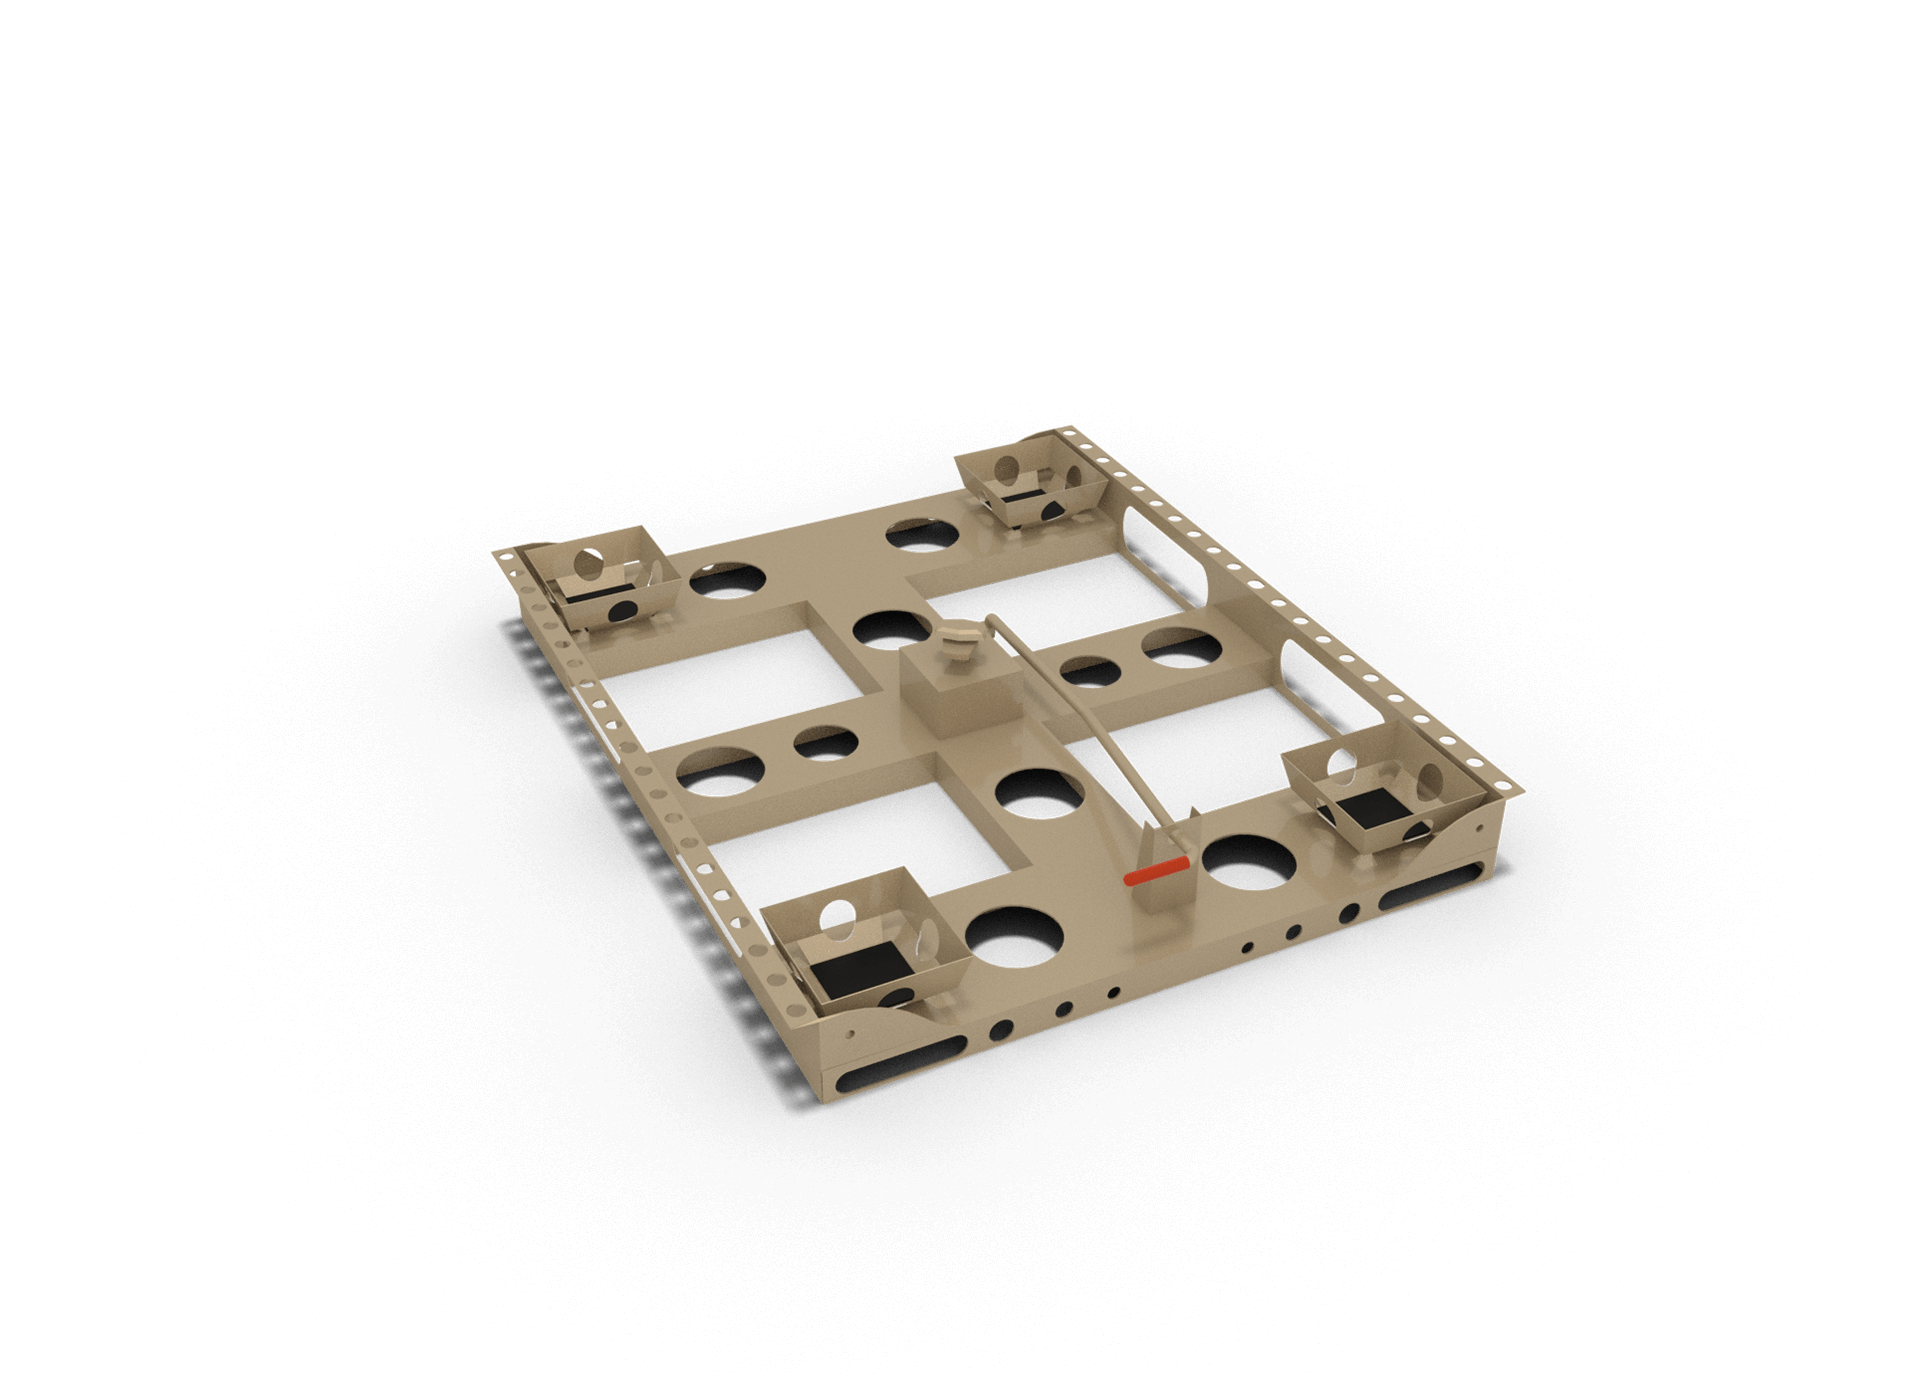 FPU® TRICON Adapter Plate